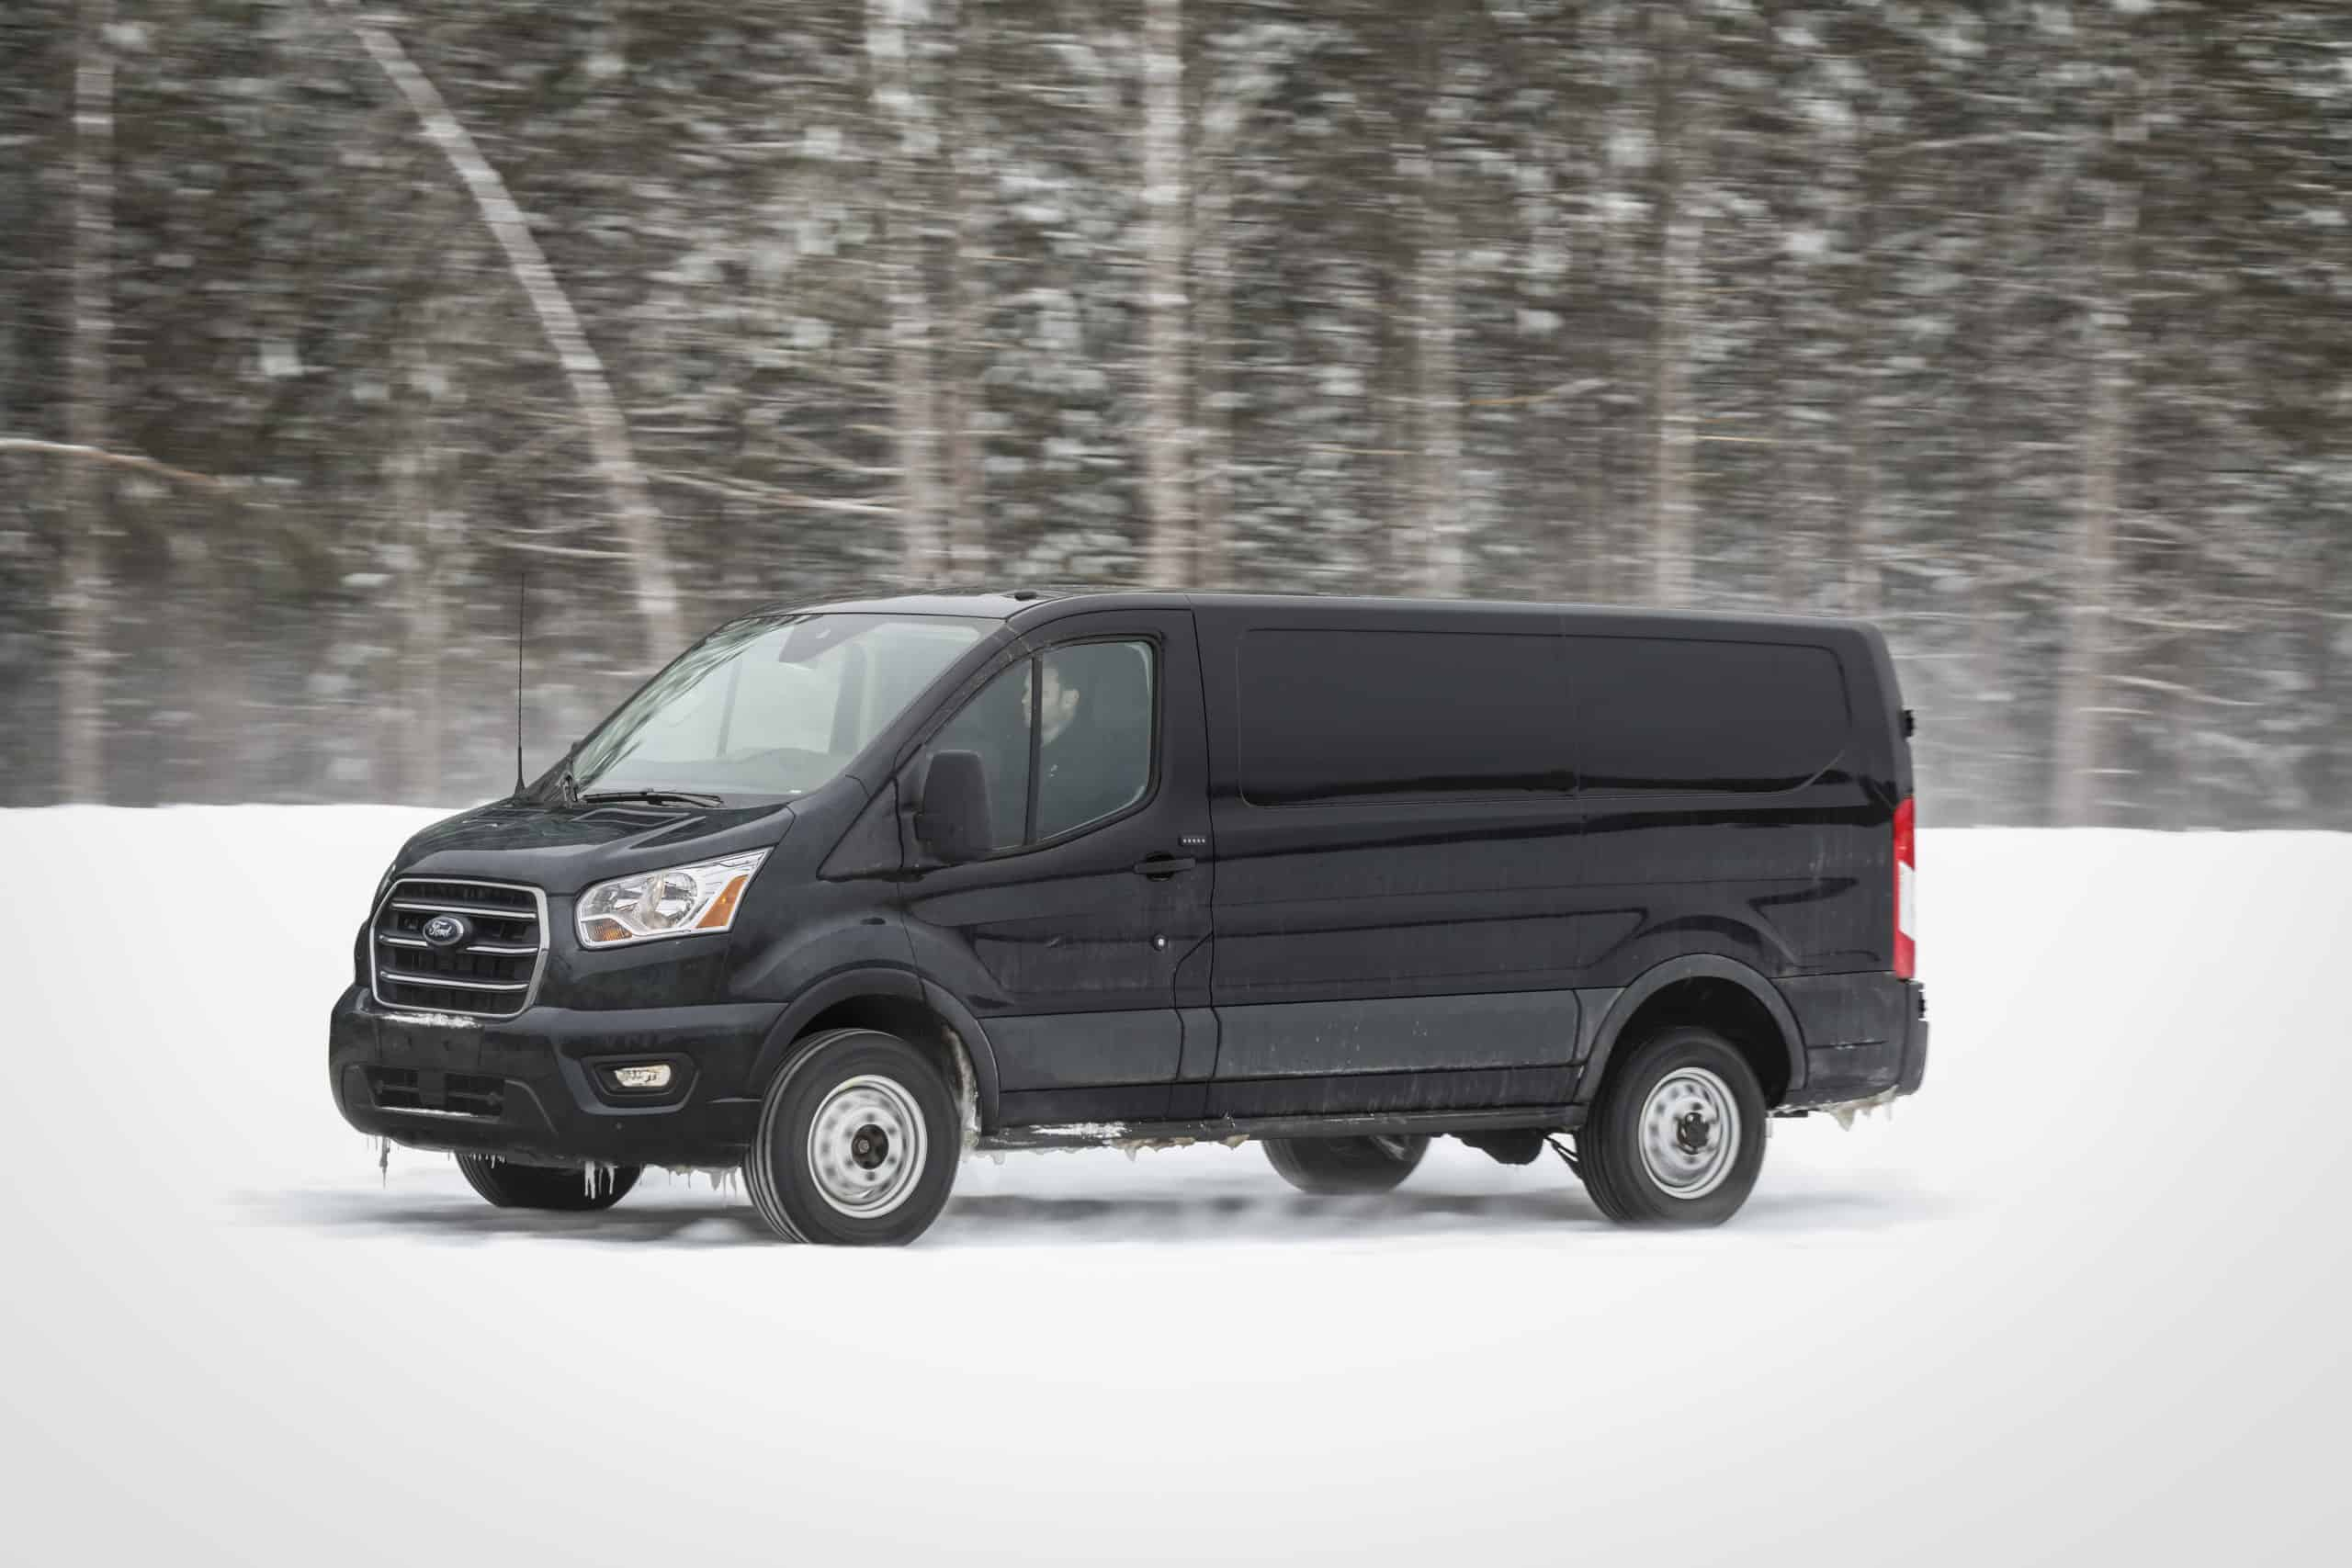 AWD Ford Transit in snow